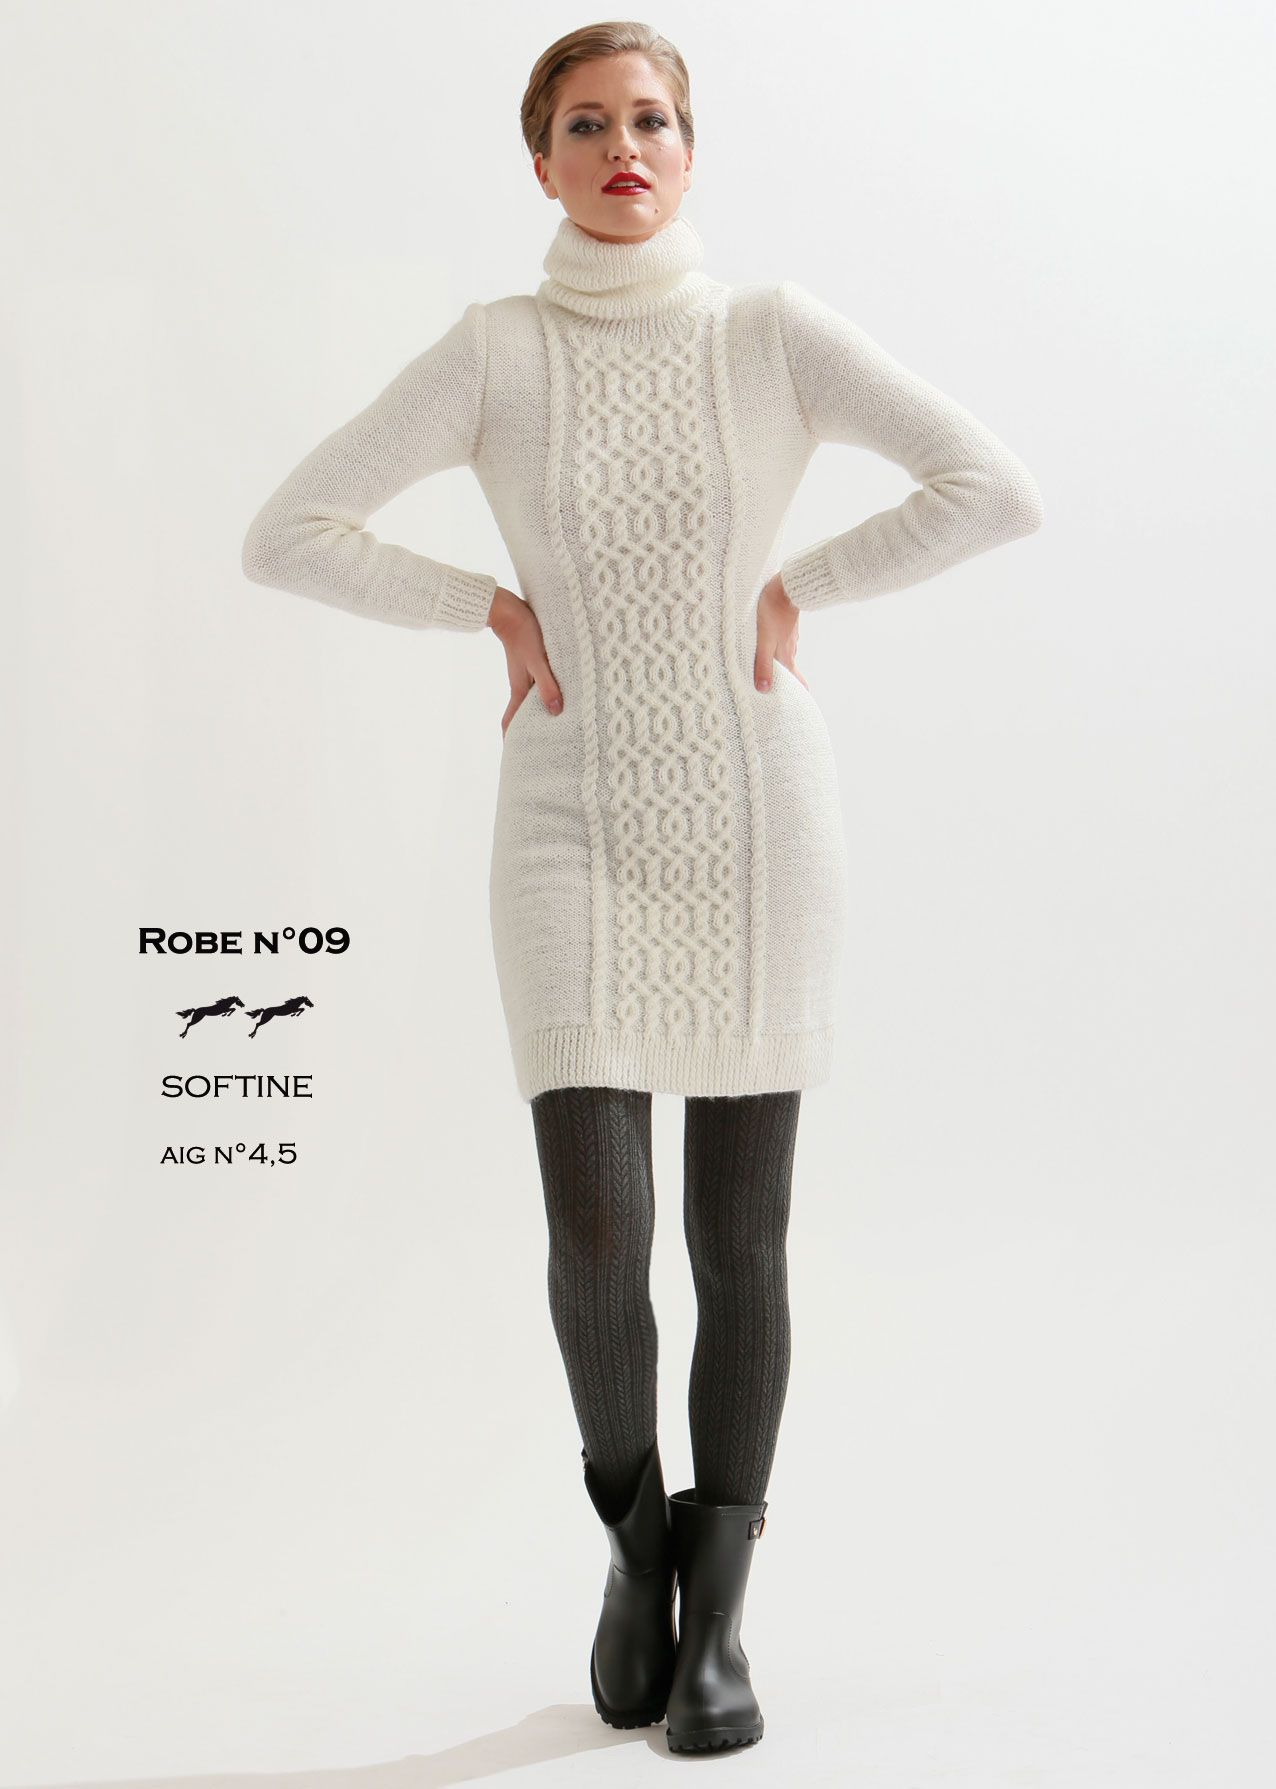 modele de tricot robe femme catalogue cheval blanc n With robe d hiver femme